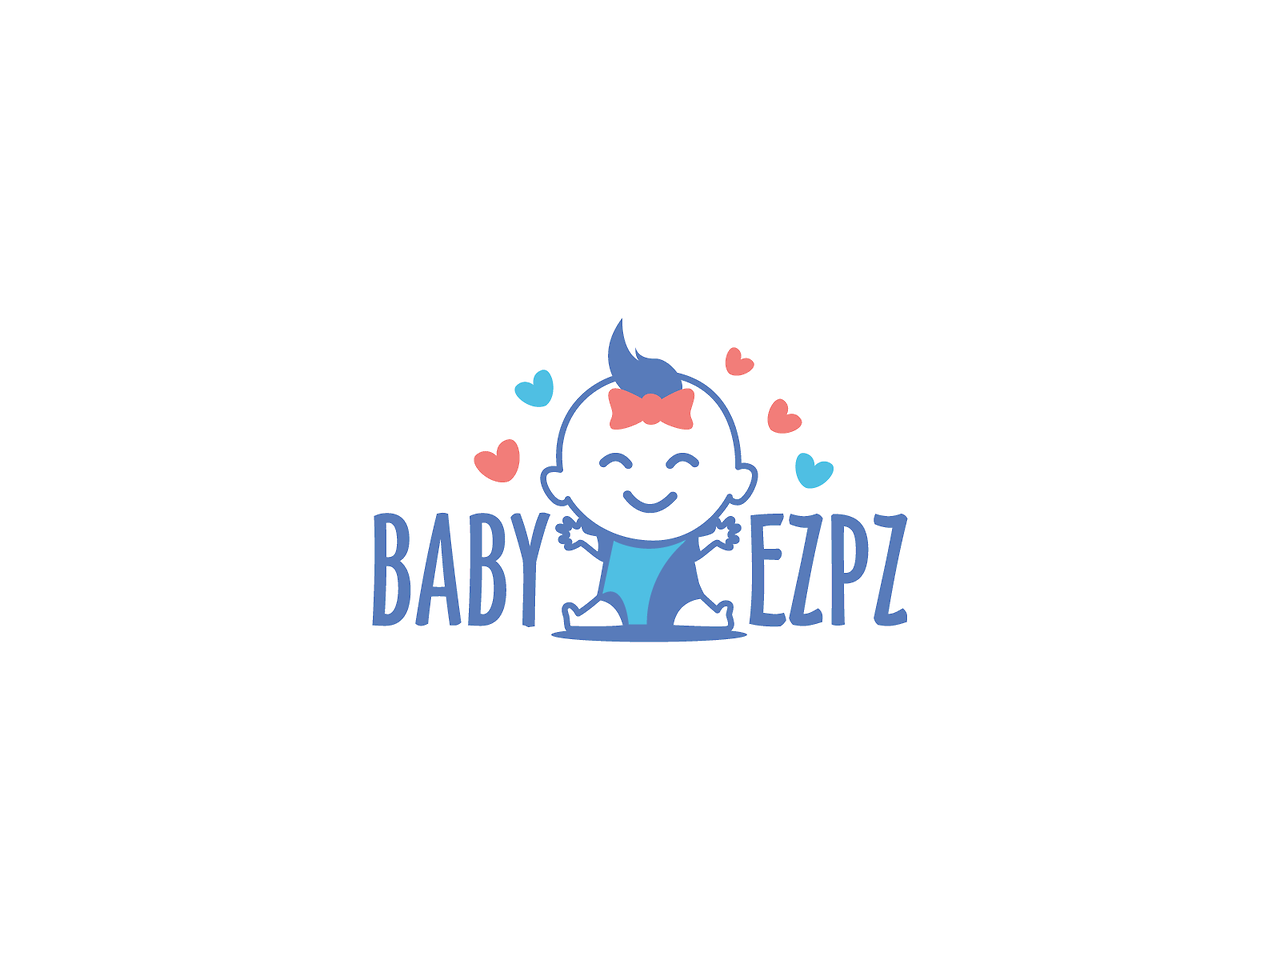 baby girl logo design